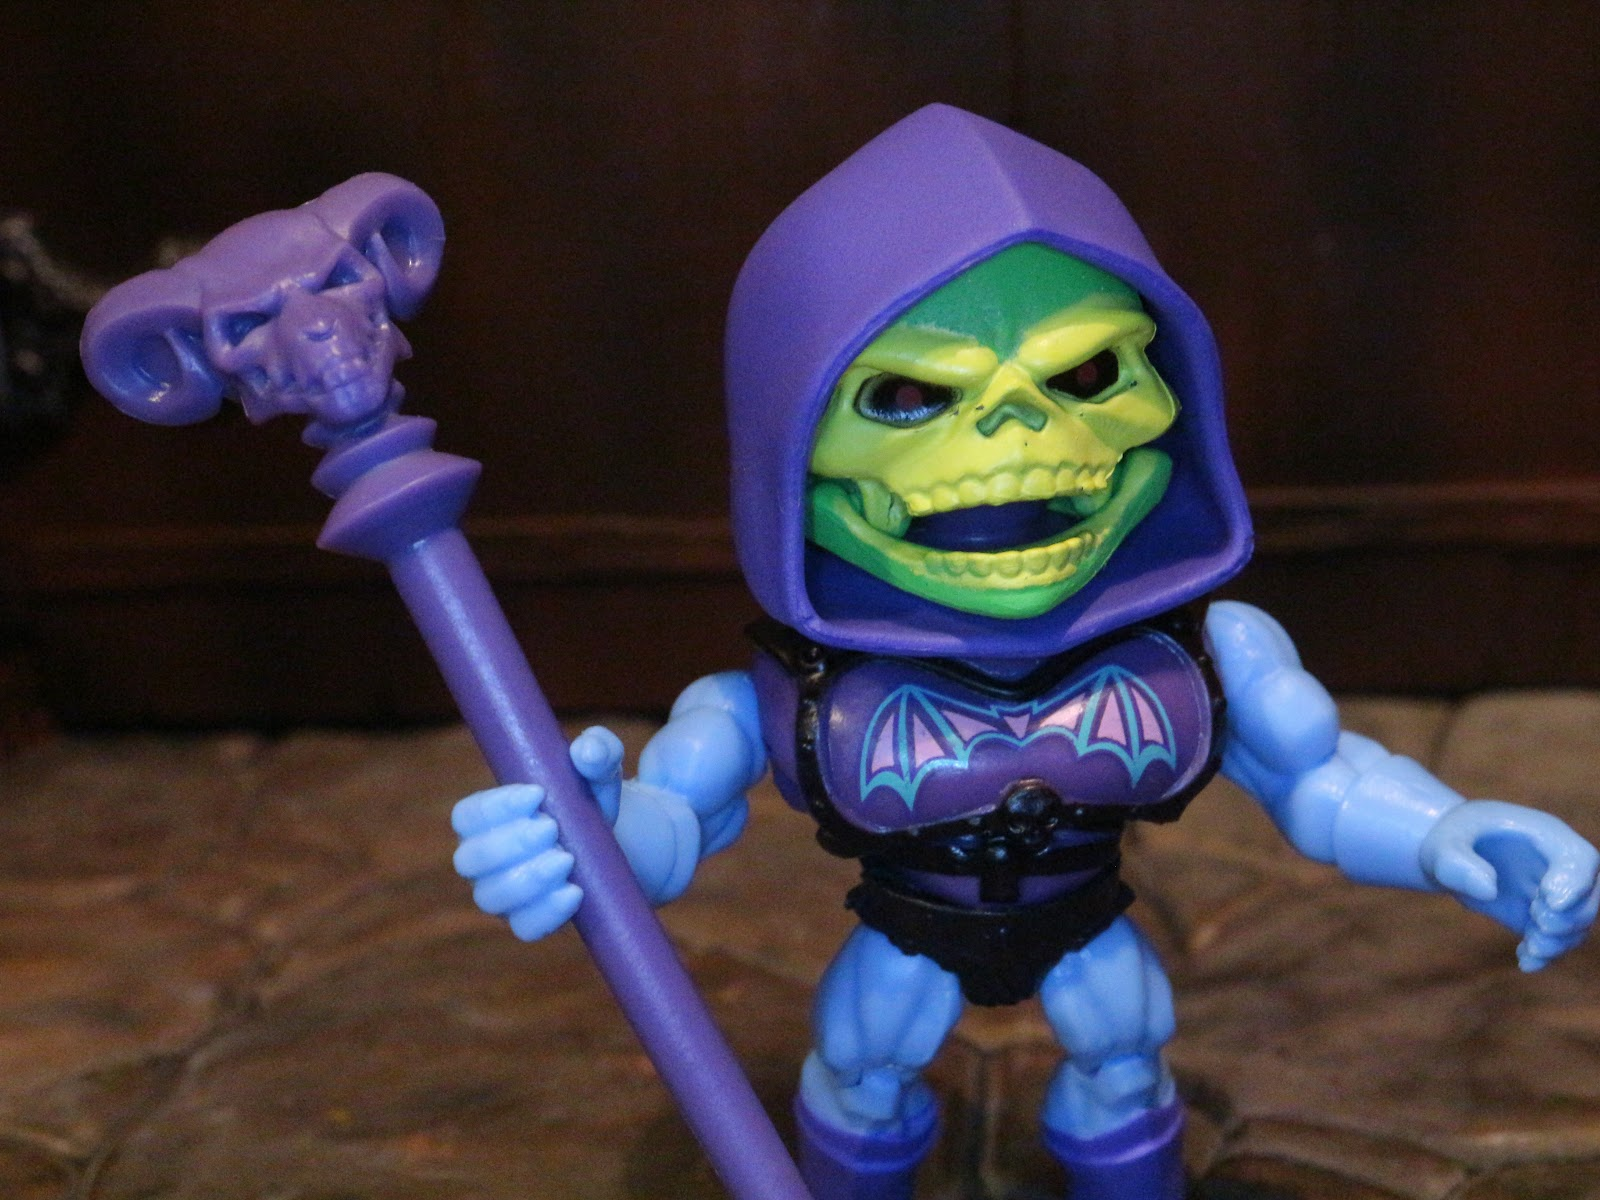 MASTERS OF THE UNIVERSE MOTU LOYAL SUBJECTS VINYL BATTLE ARMOR SKELETOR 1 OUT 6